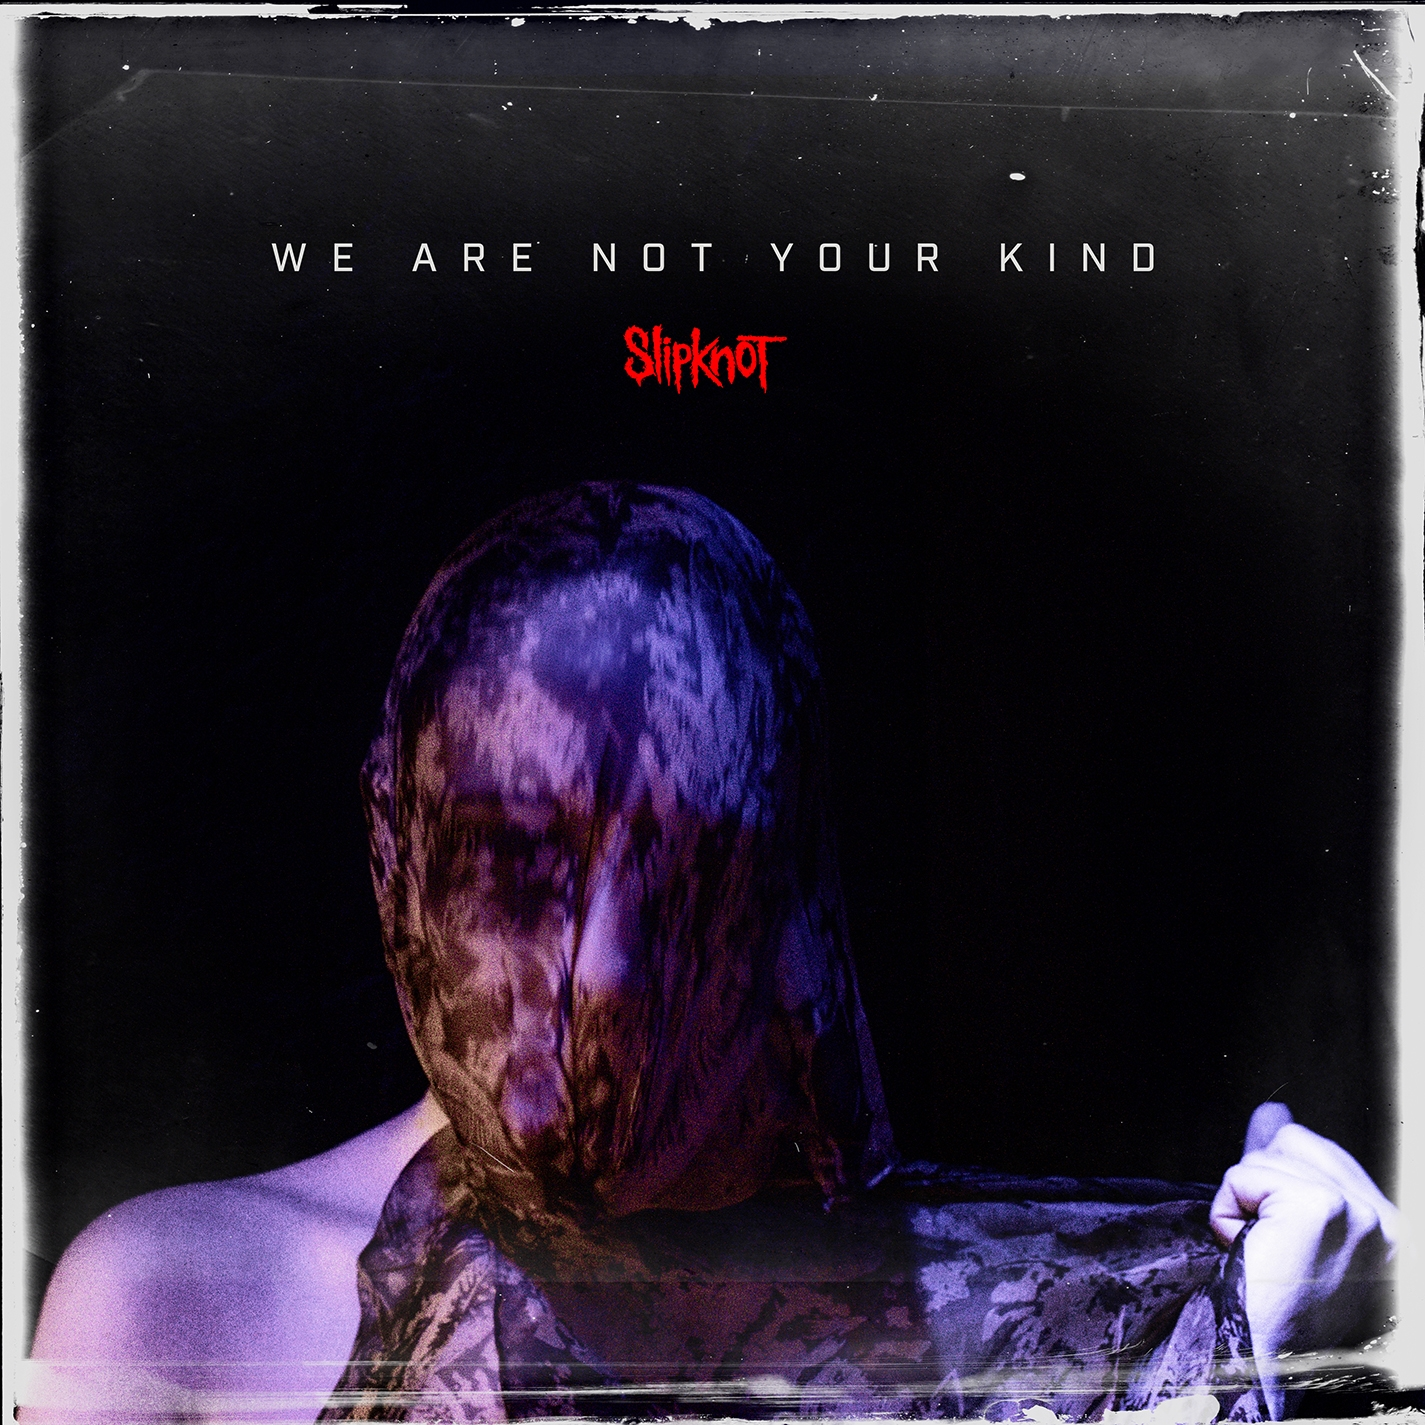 ALBUM REVIEW: We Are Not Your Kind - Slipknot - Distorted